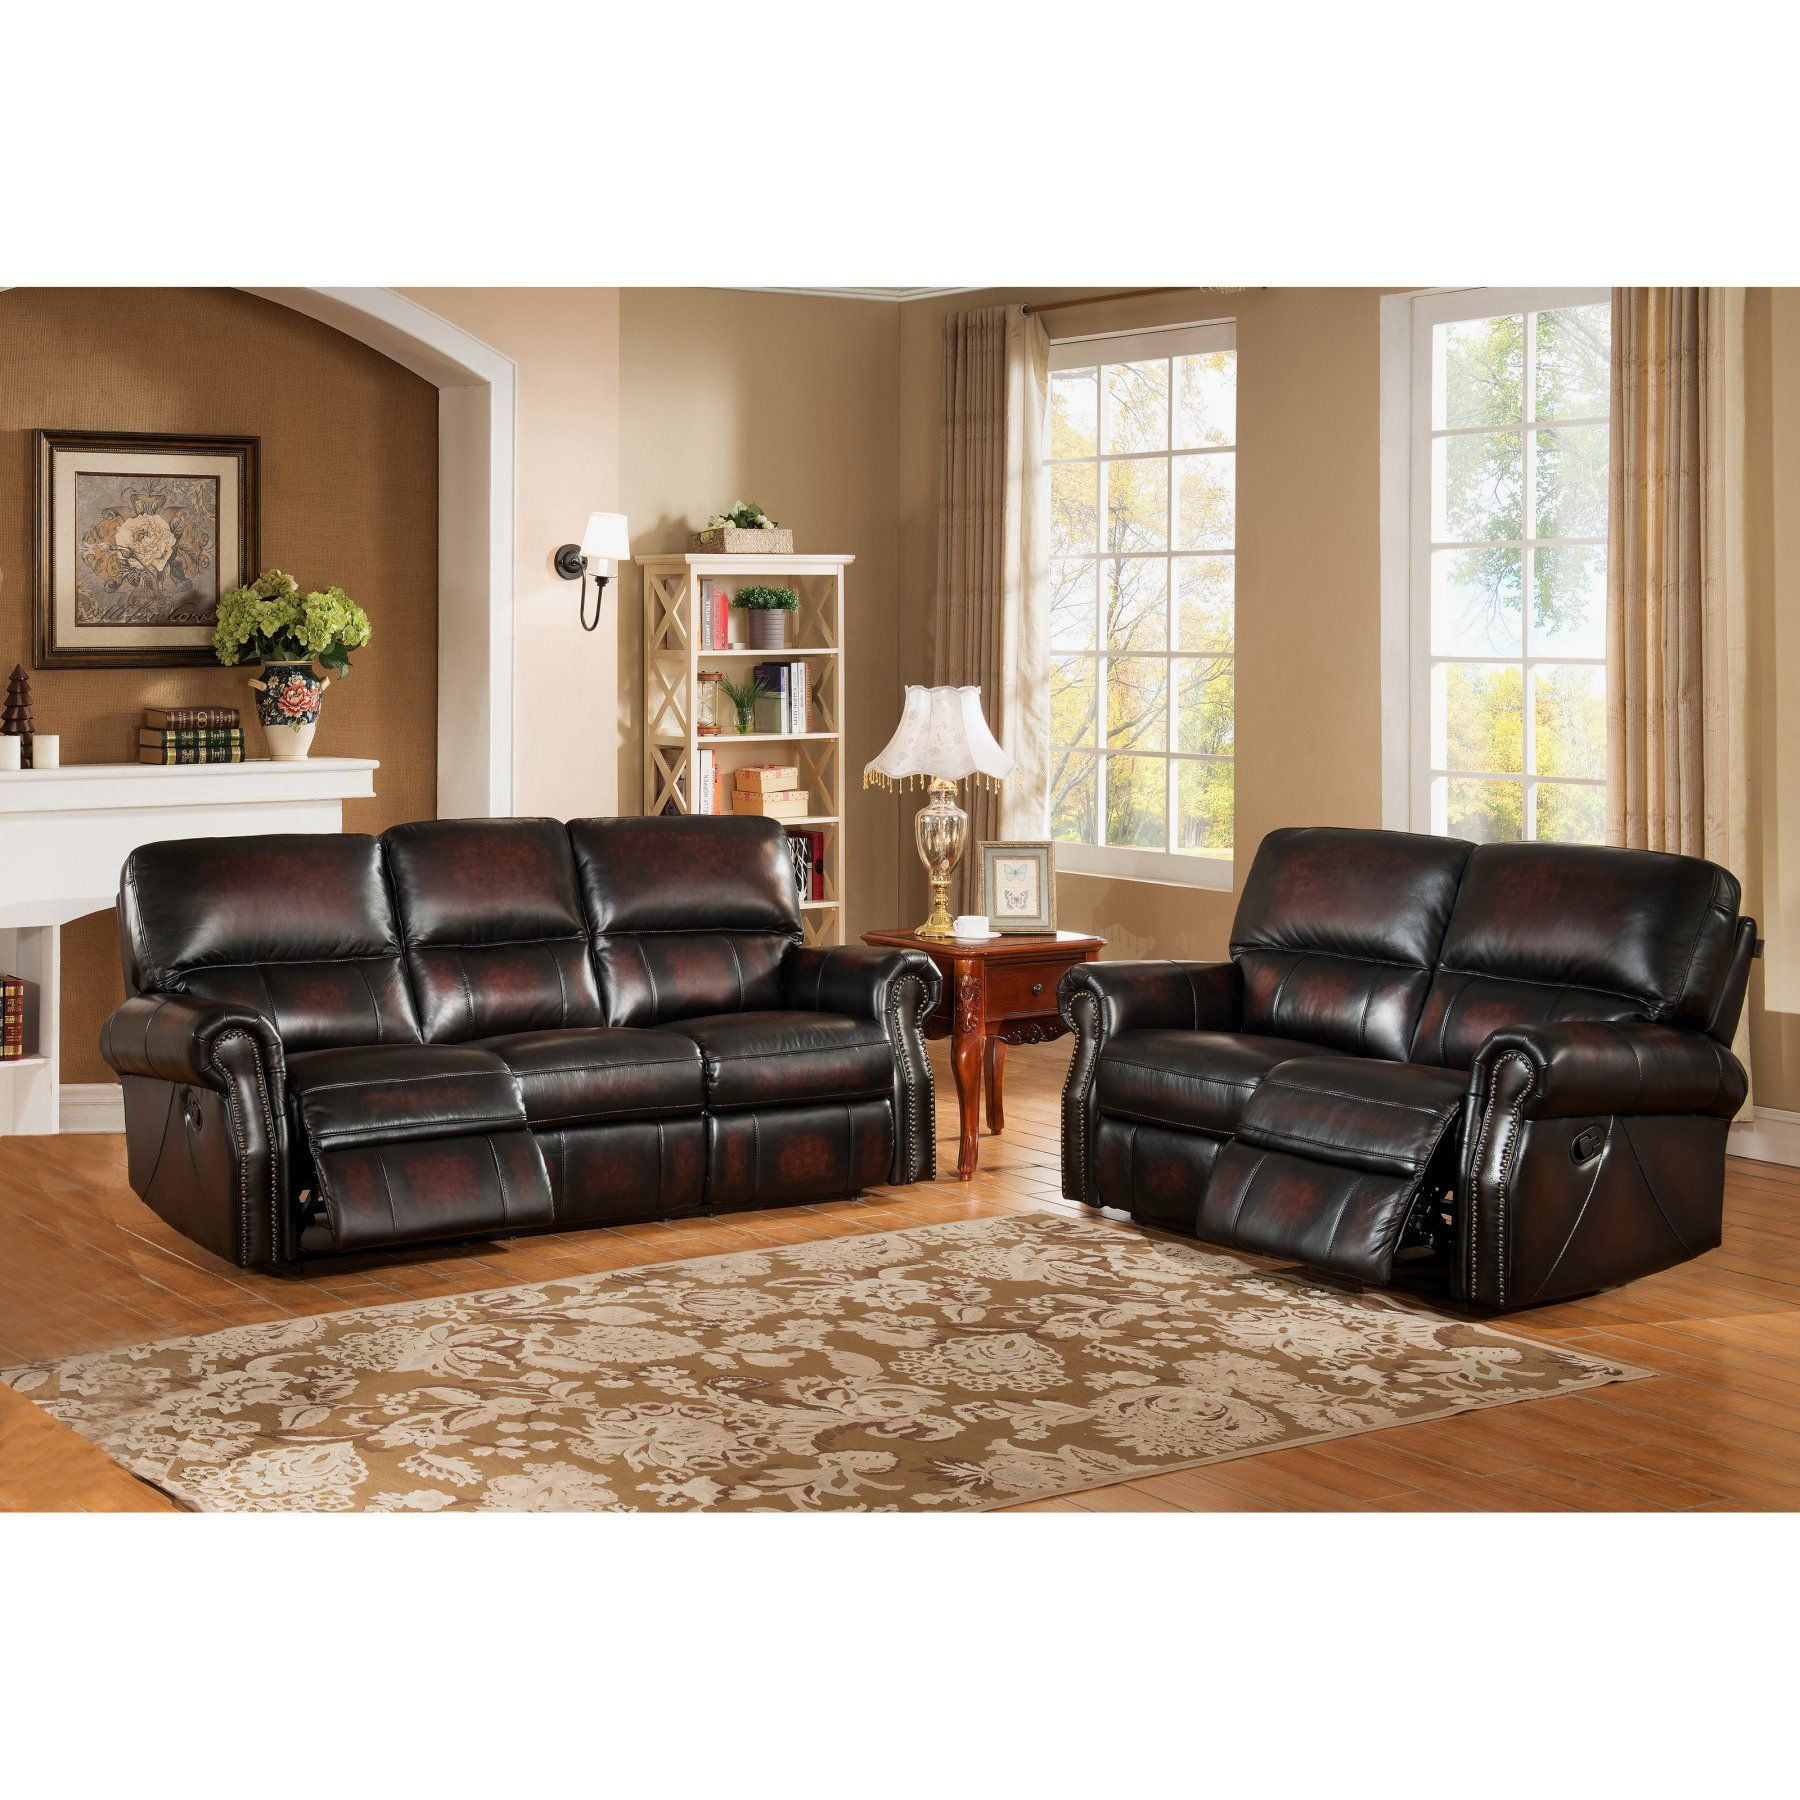 Leather Sofa Set Living Room Furniture Brooklyn • Patio Ideas